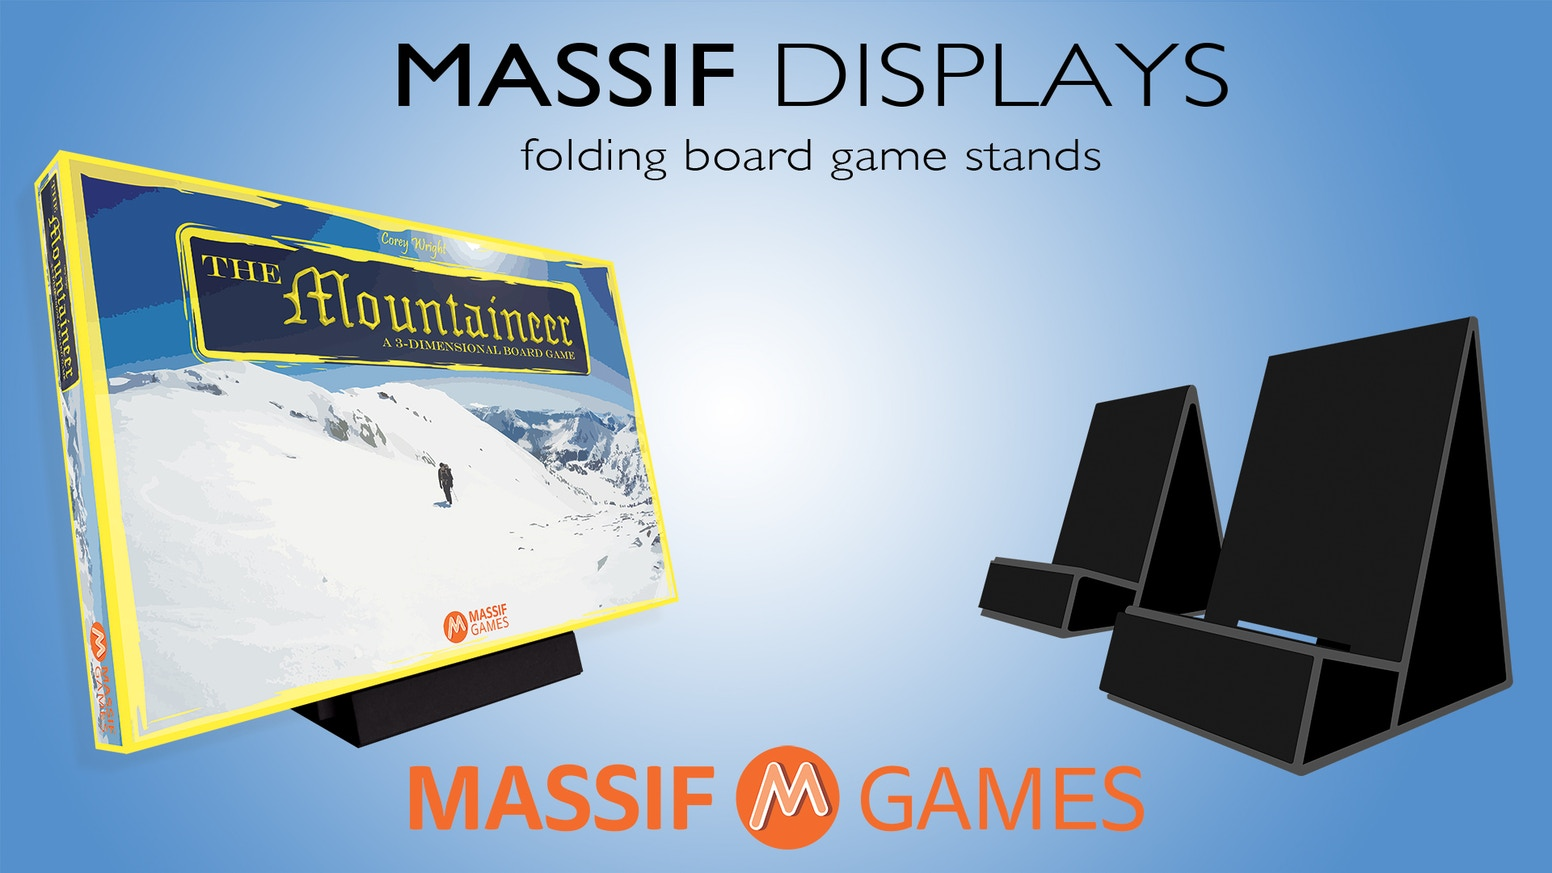 Available now at Massif Games! These stands are perfect for displaying board games, card games, playing cards, books, art, and more.